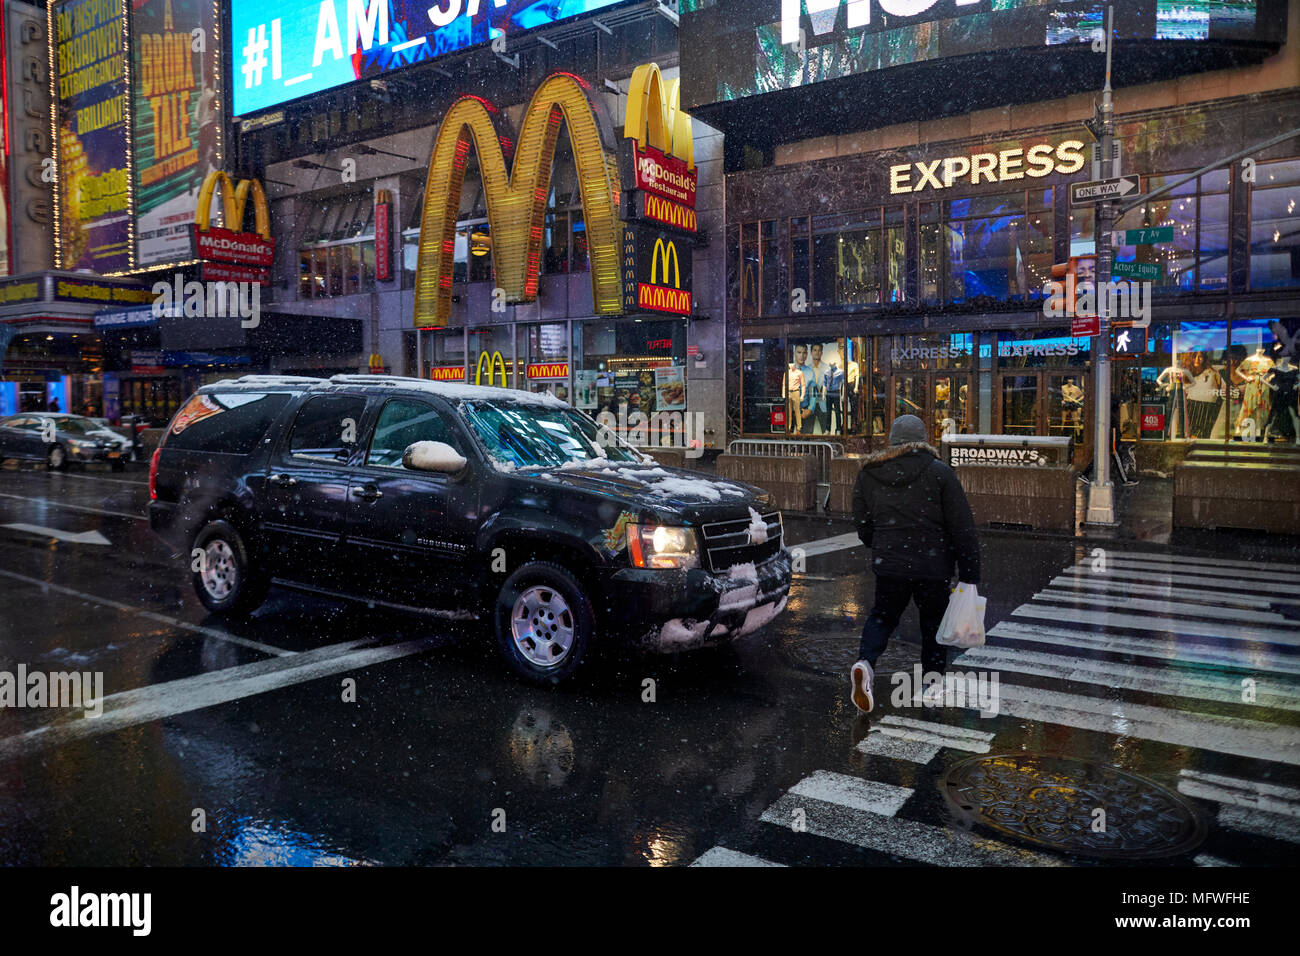 How Many Fast Food Restaurants In Nyc